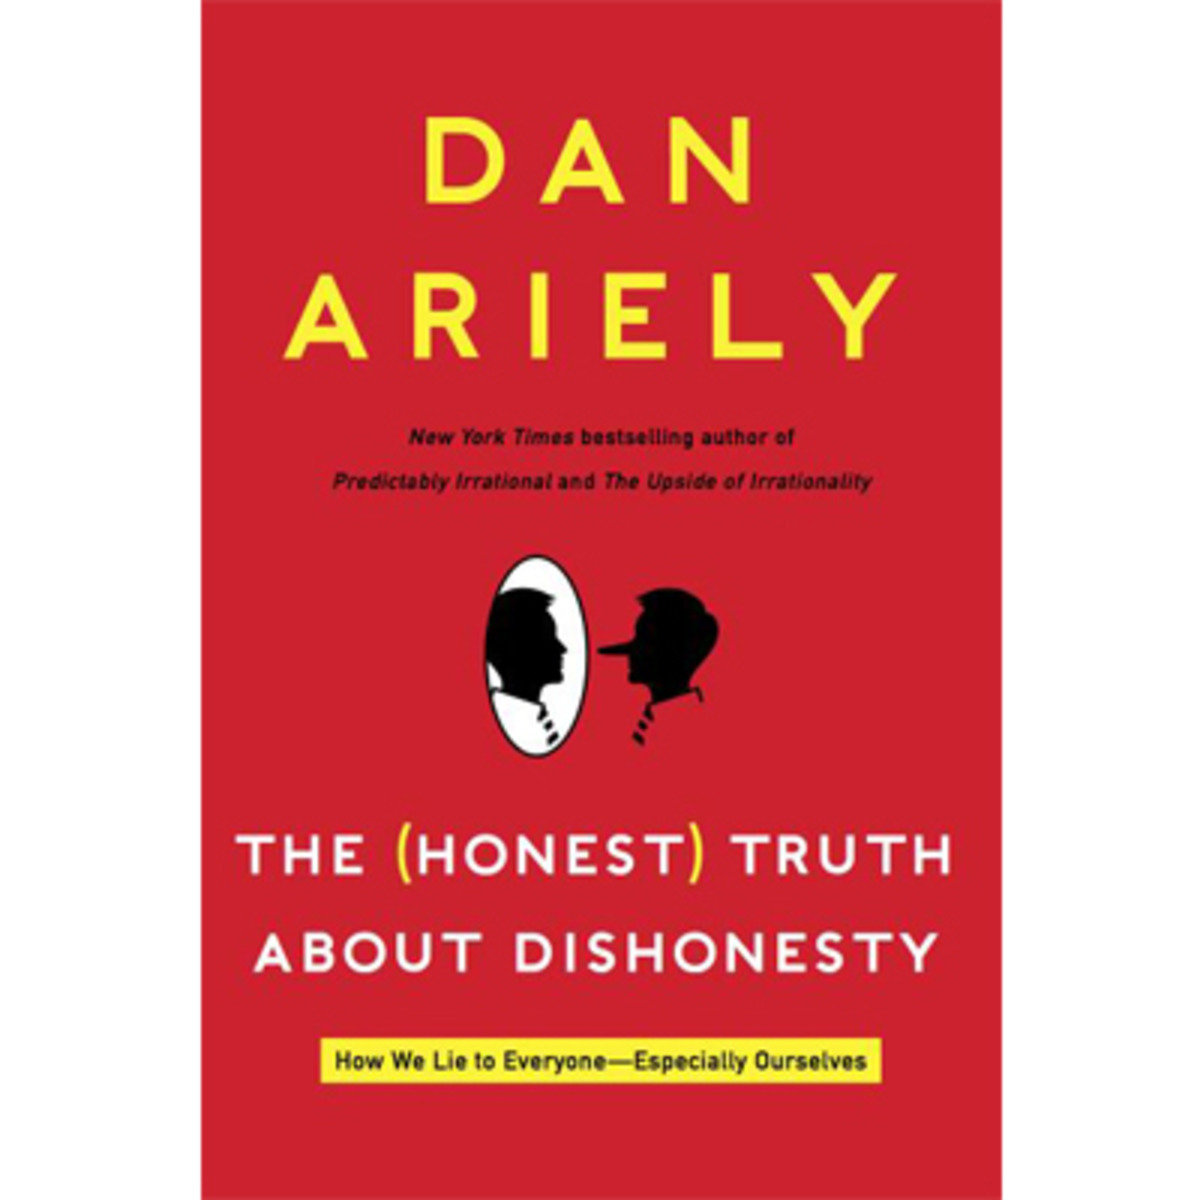 The Honest Truth about Dishonesty: How We Lie to Everyone 9780062253002